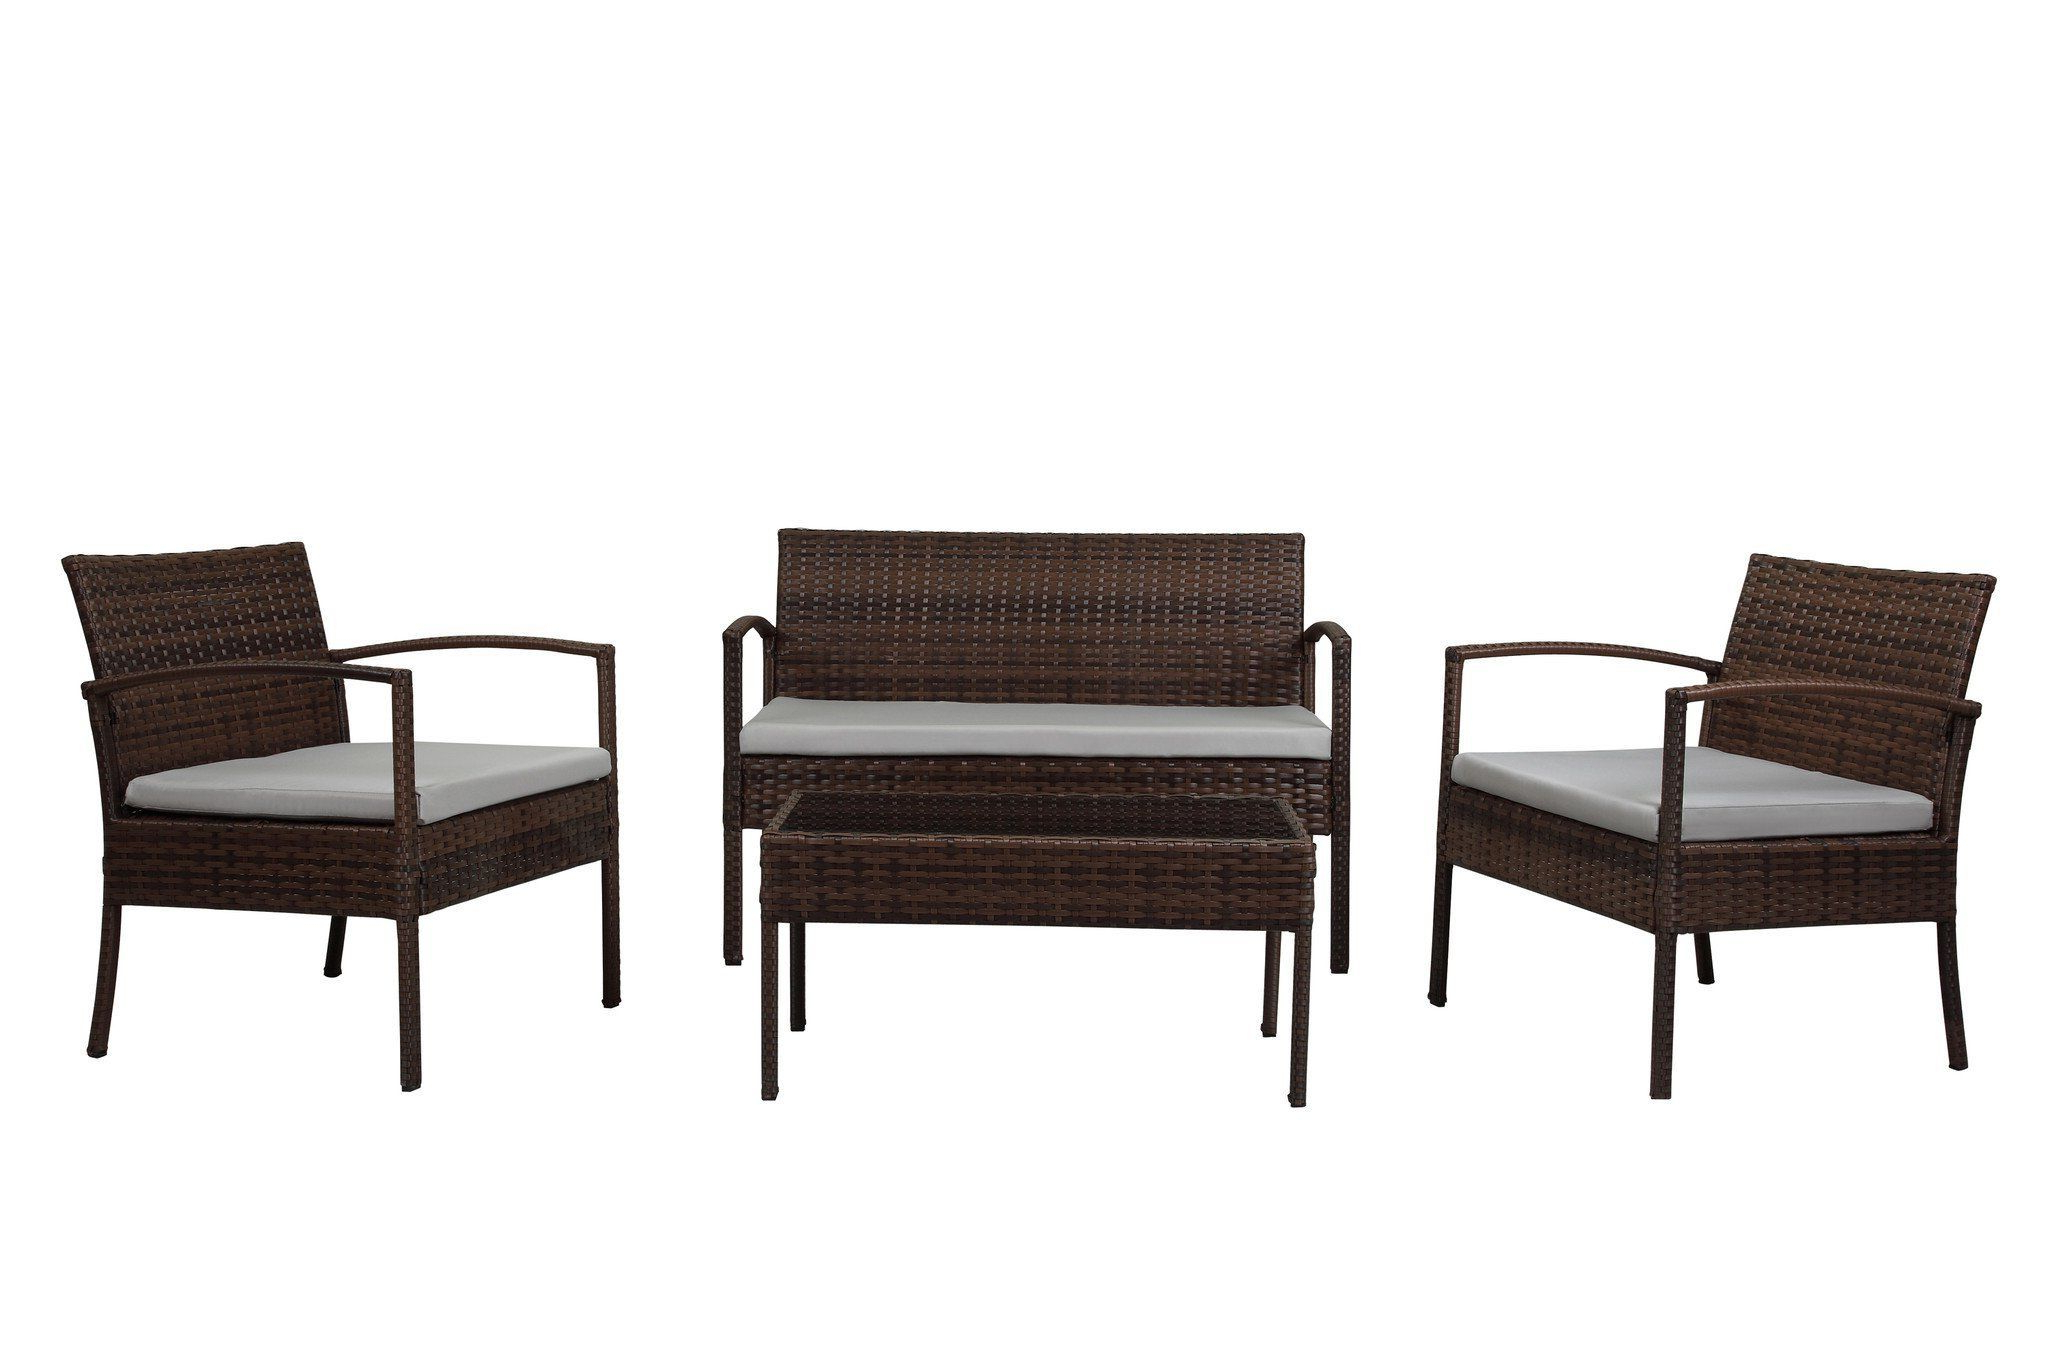 W Unlimited Lucy Collection Outdoor Garden Black Wicker Regarding Popular Bullock Outdoor Wooden Loveseats With Cushions (View 18 of 20)